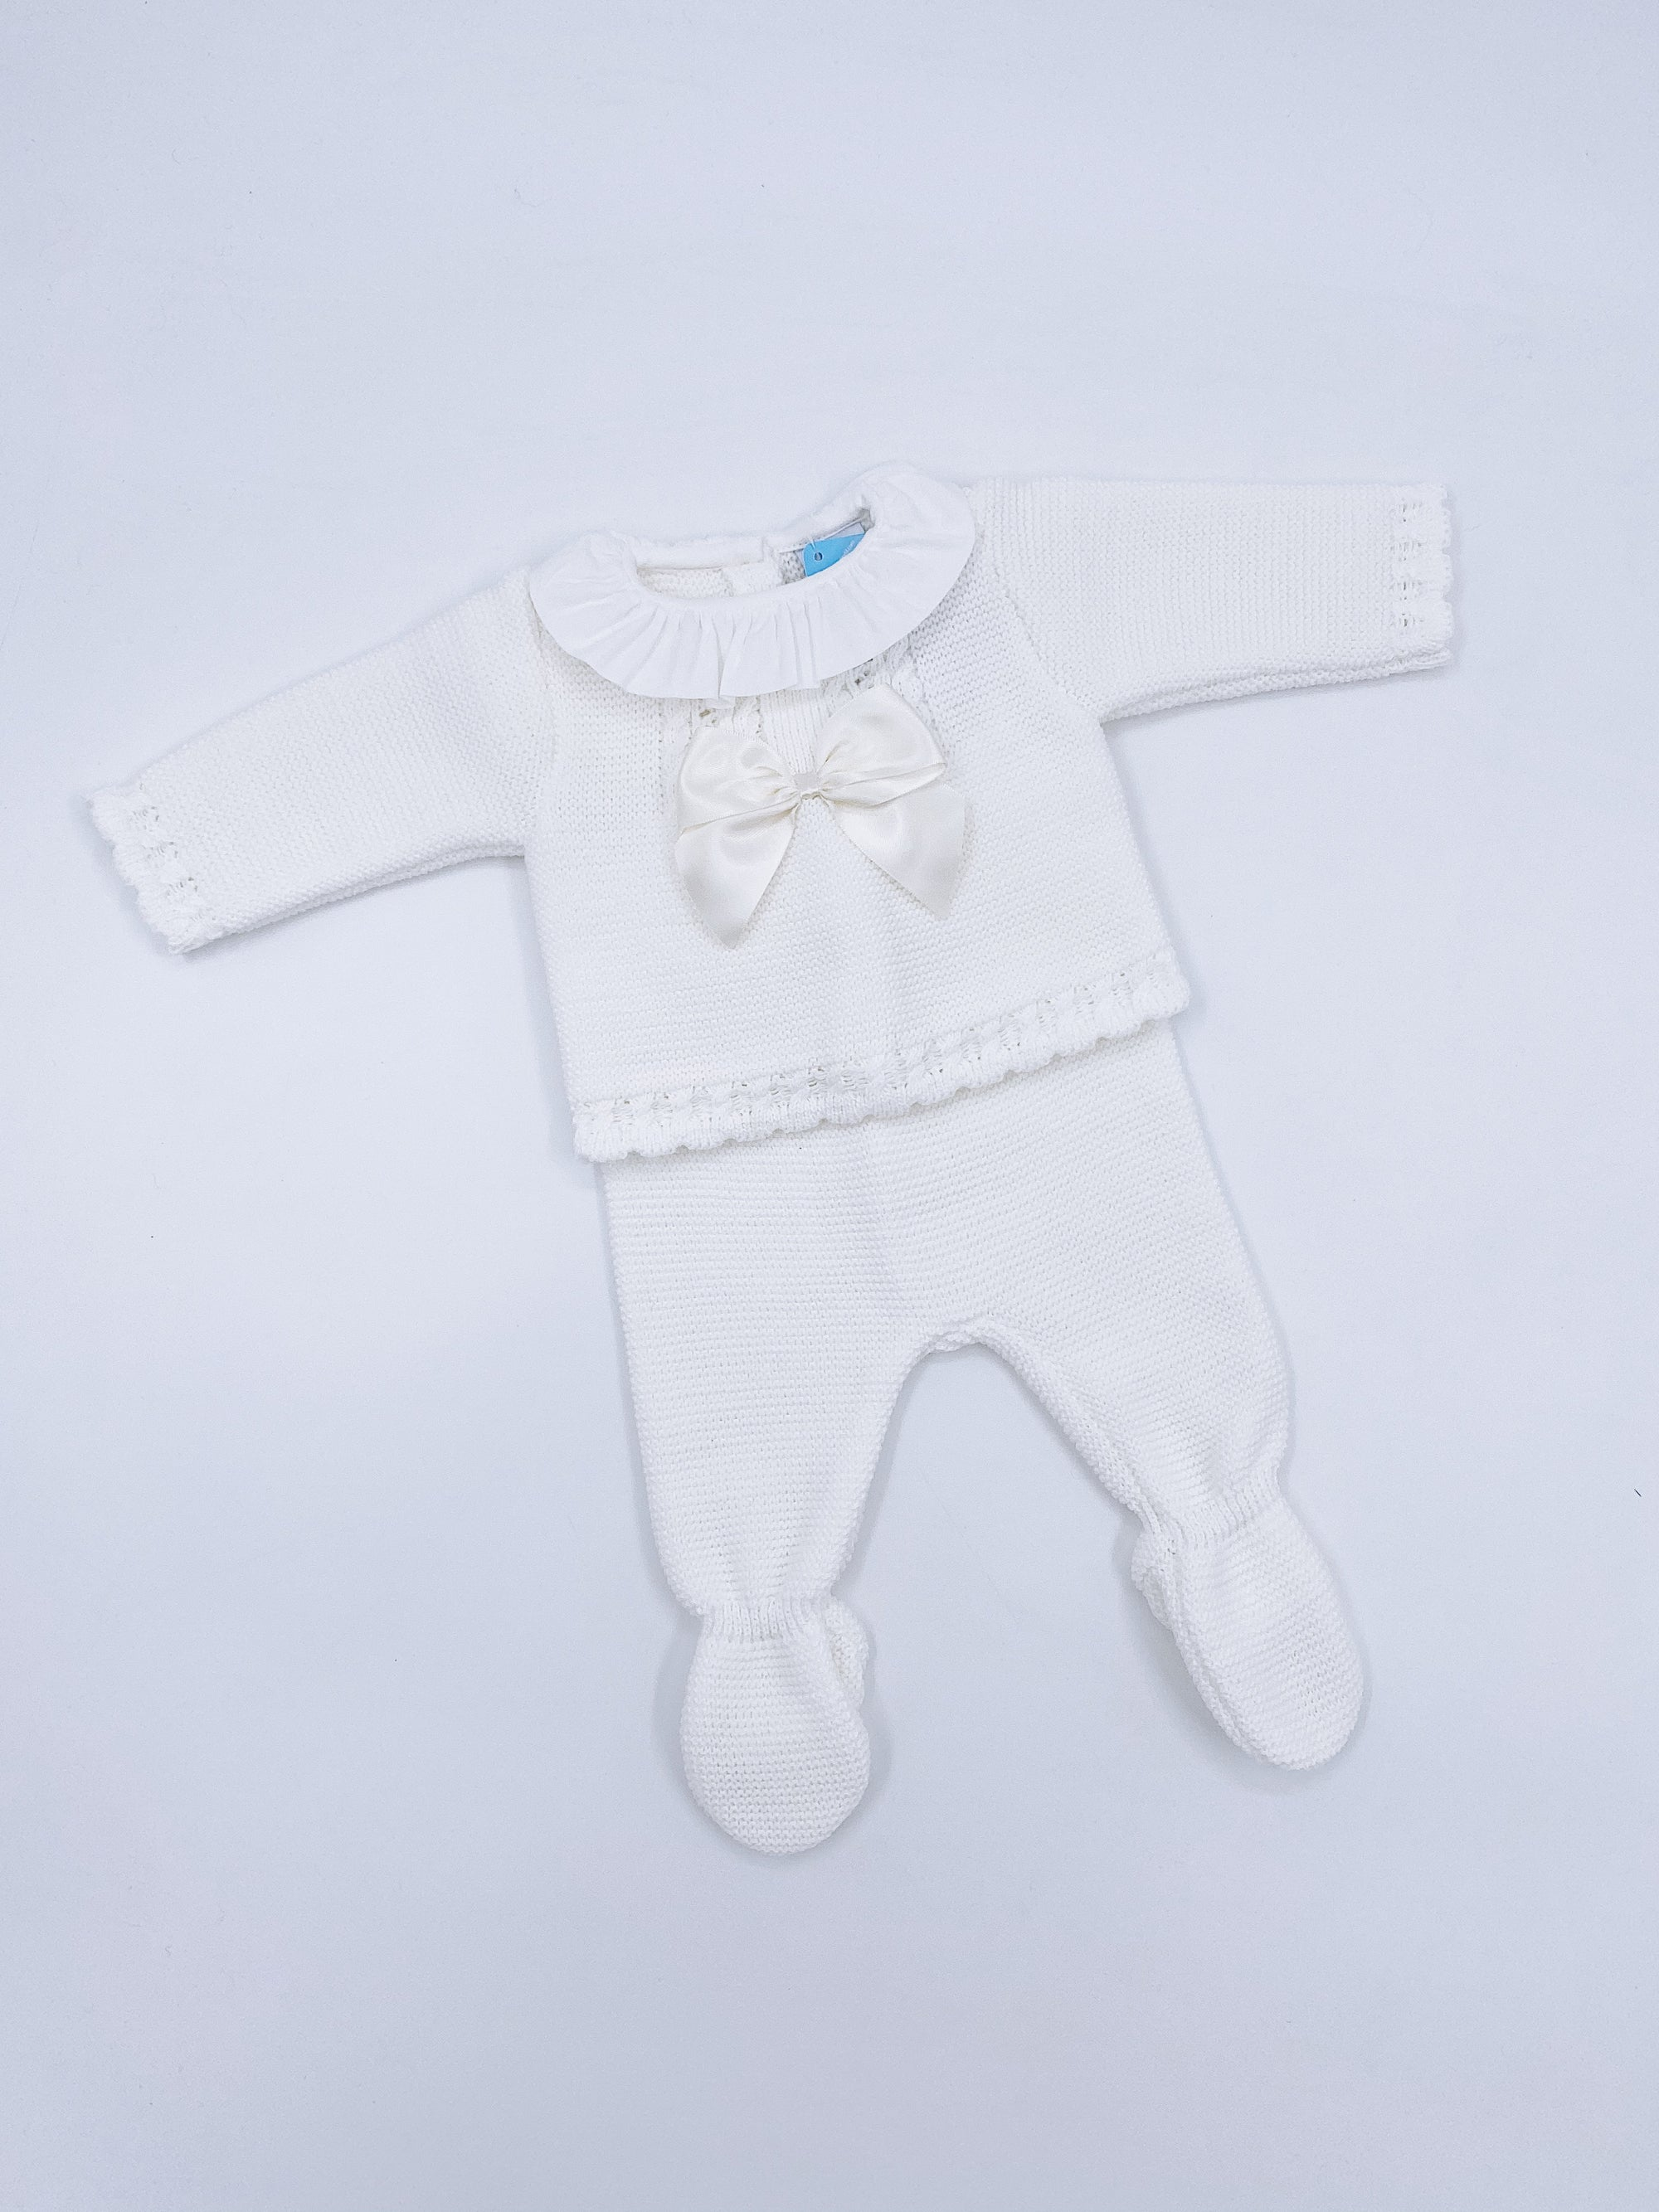 Beautiful Ivory knitted baby set with bow details(N158)